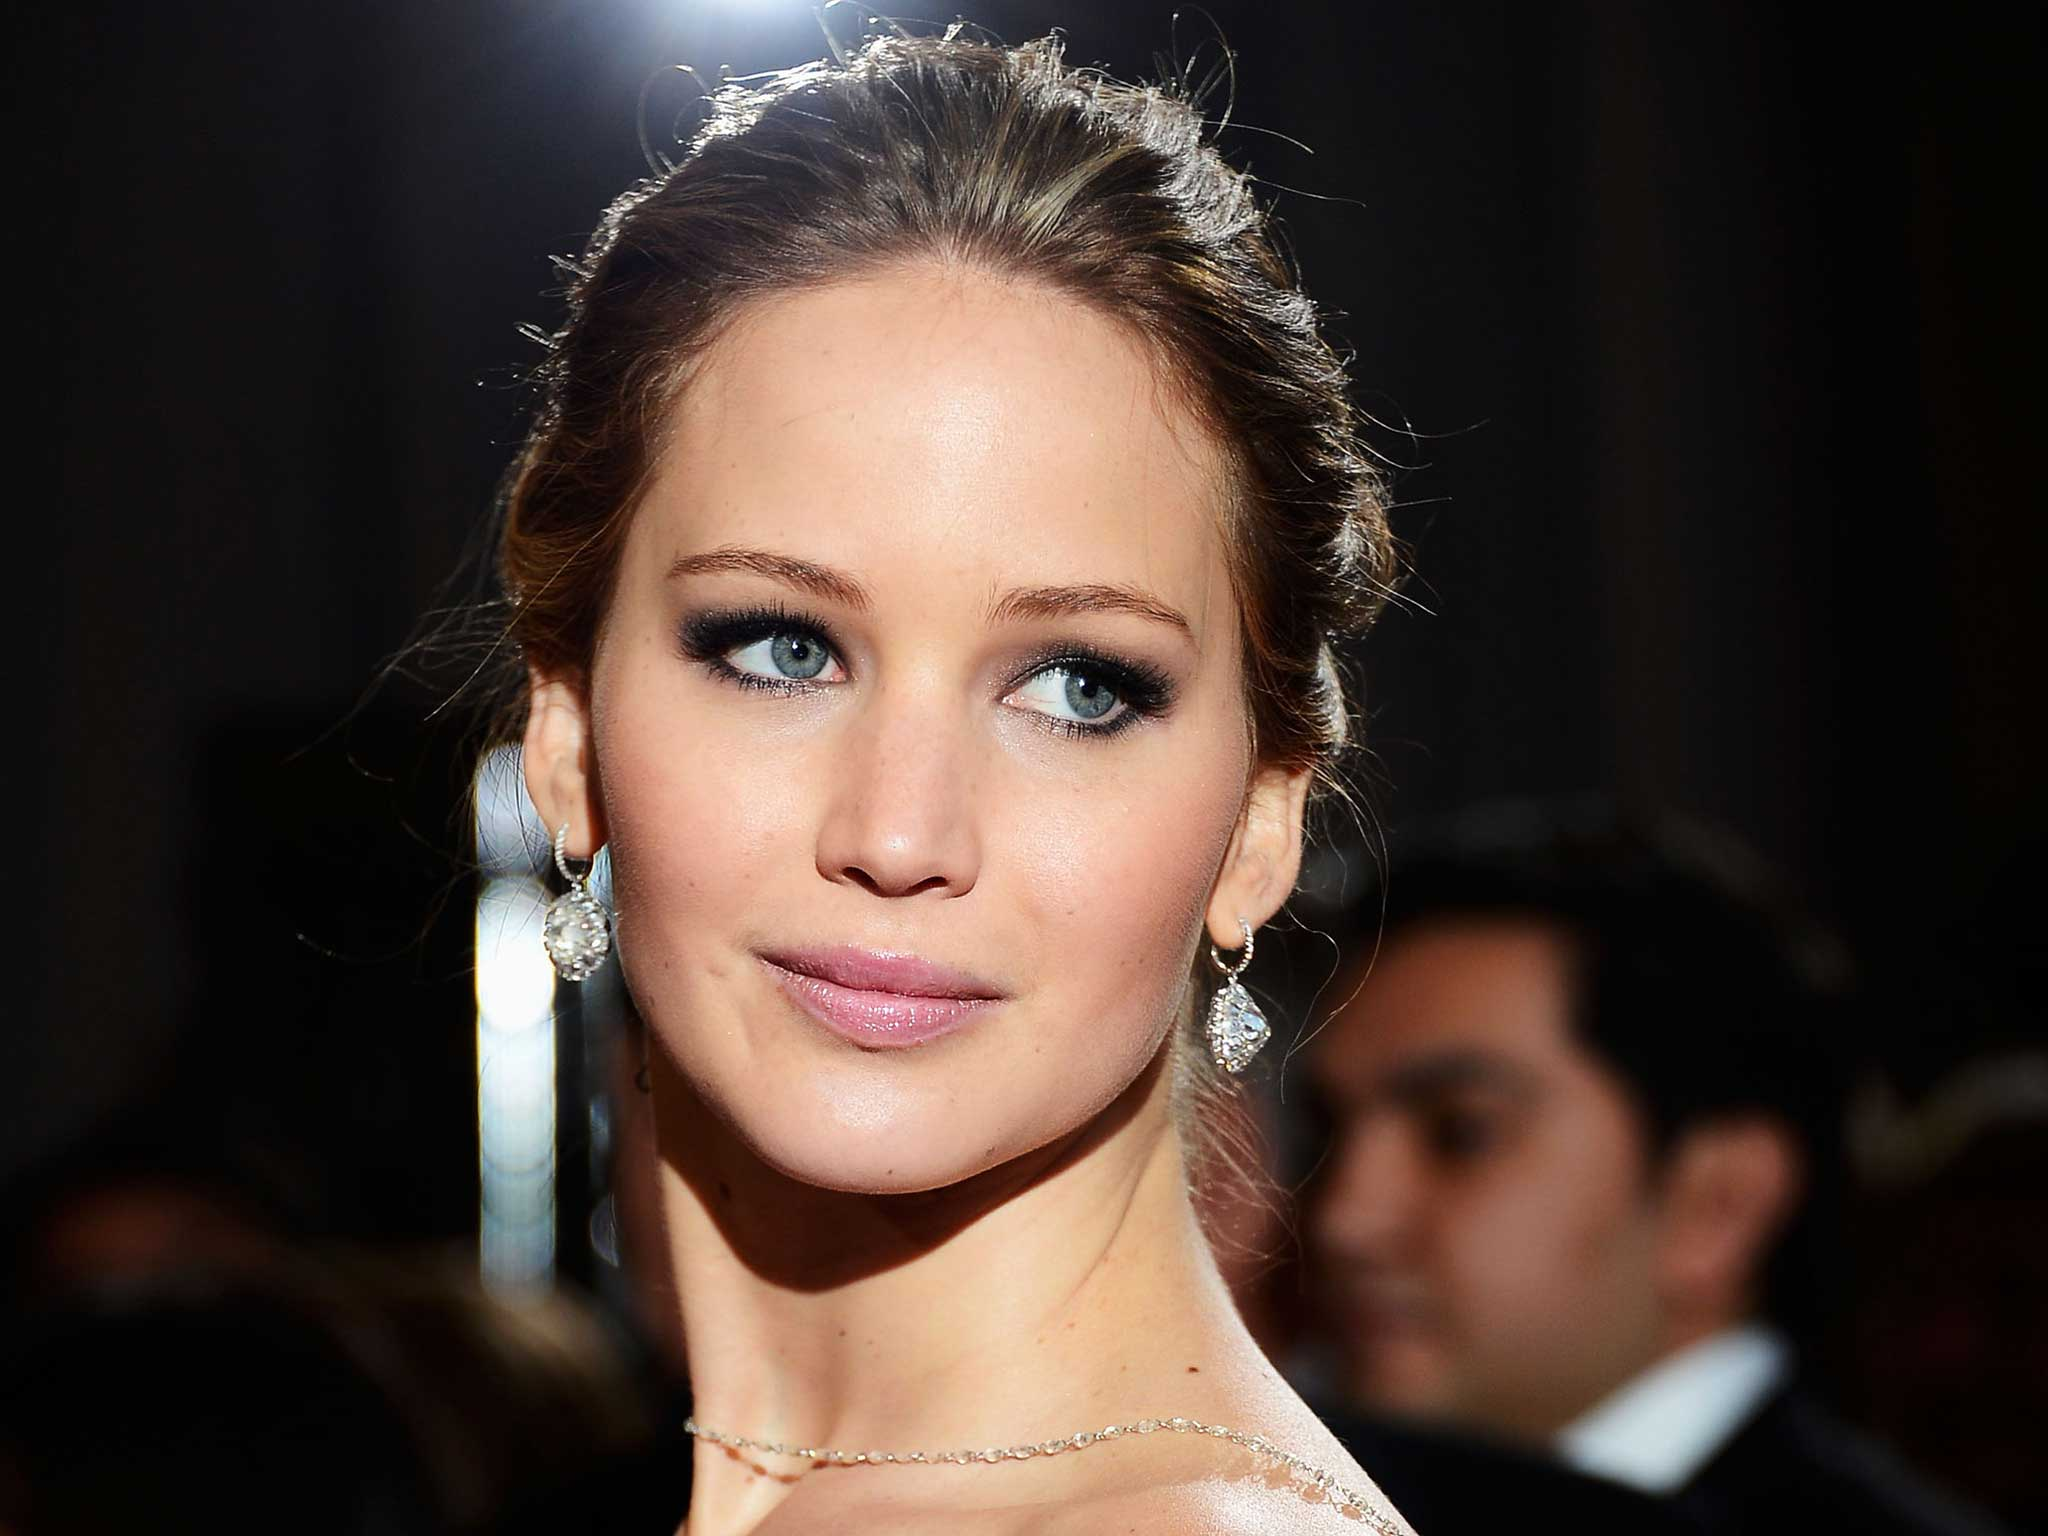 Jennifer Lawrence Nude Pictures Leak Sparks Fear Of More -5547